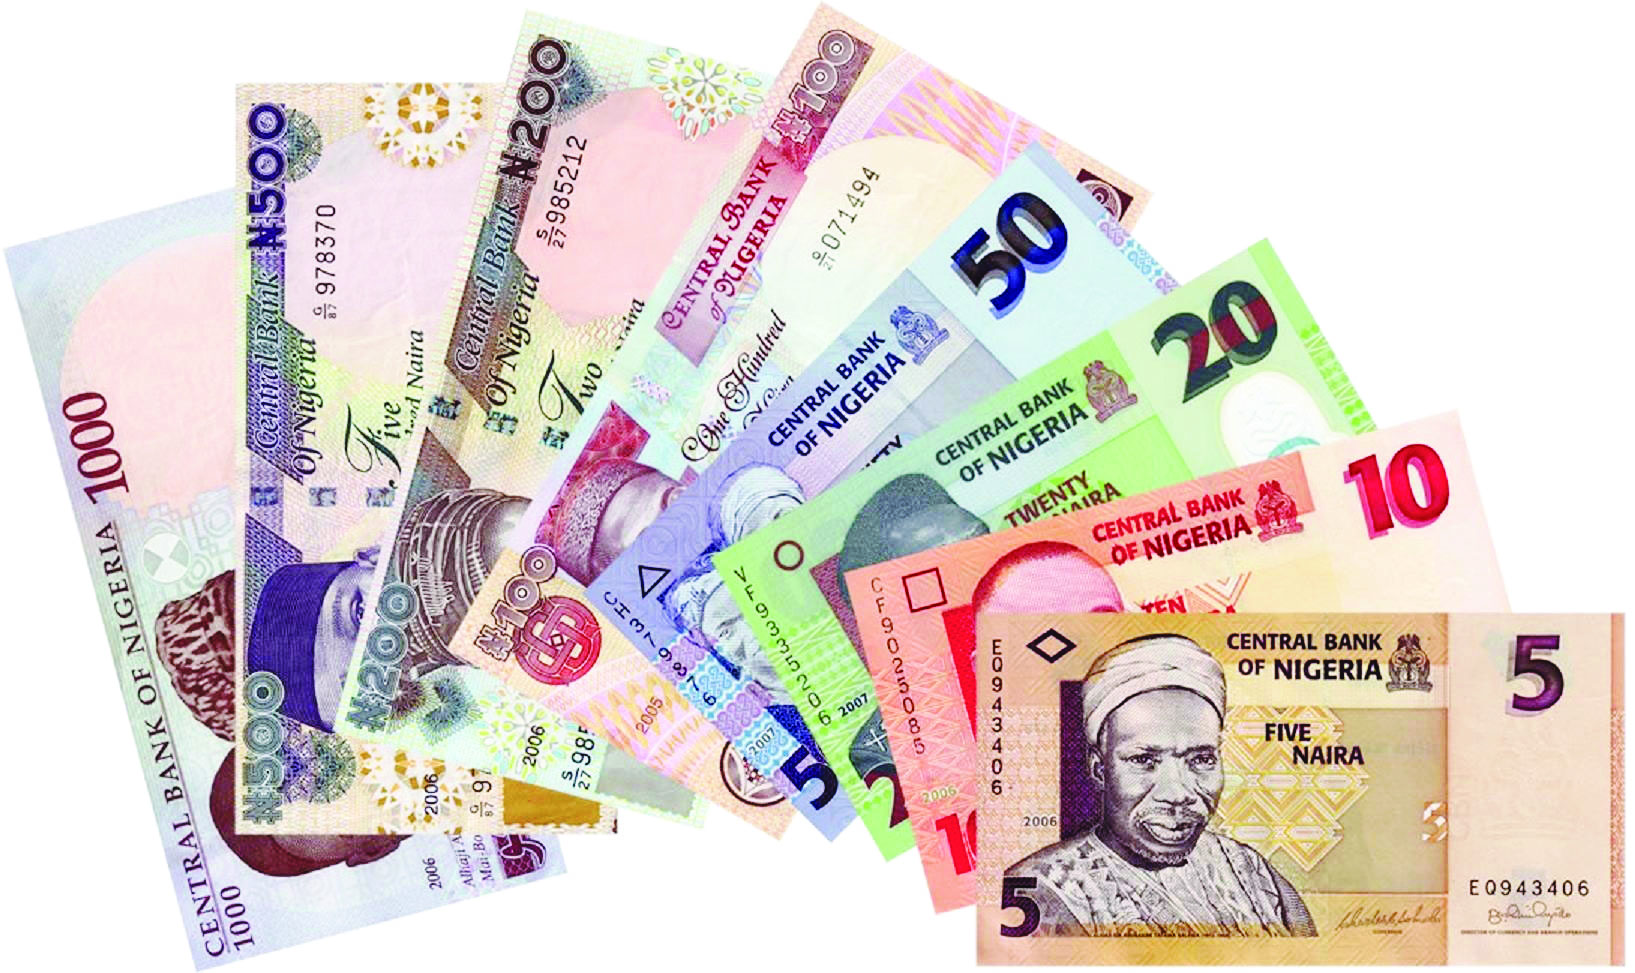 Bureau De Change Operators Lose More Money as Naira Gains Significantly Against the Dollar